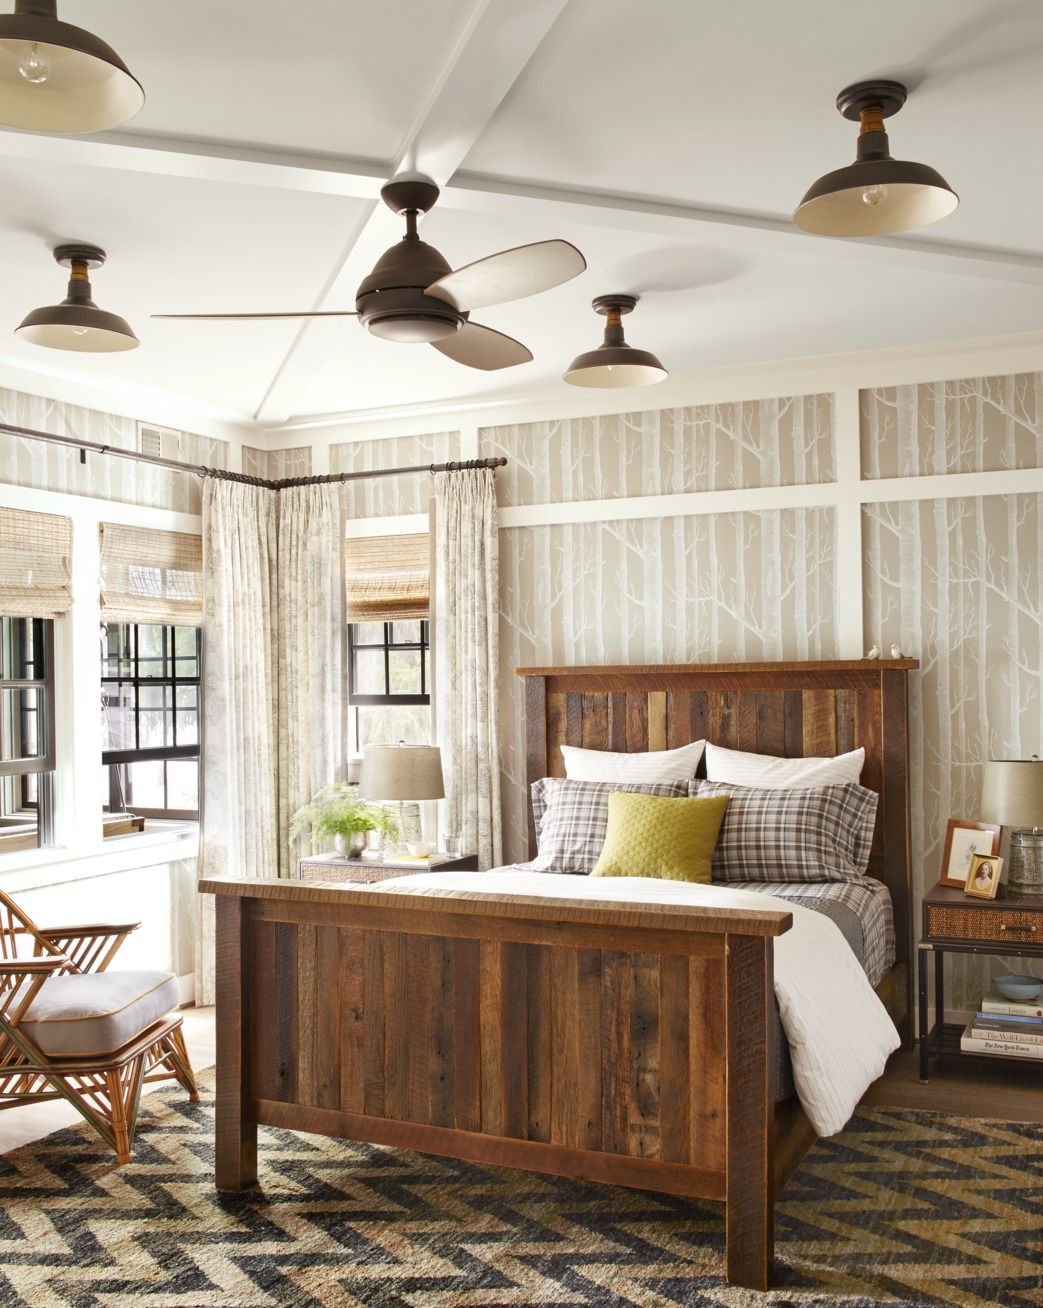 4 Rustic Bedroom Ideas - Rustic Decorating Ideas